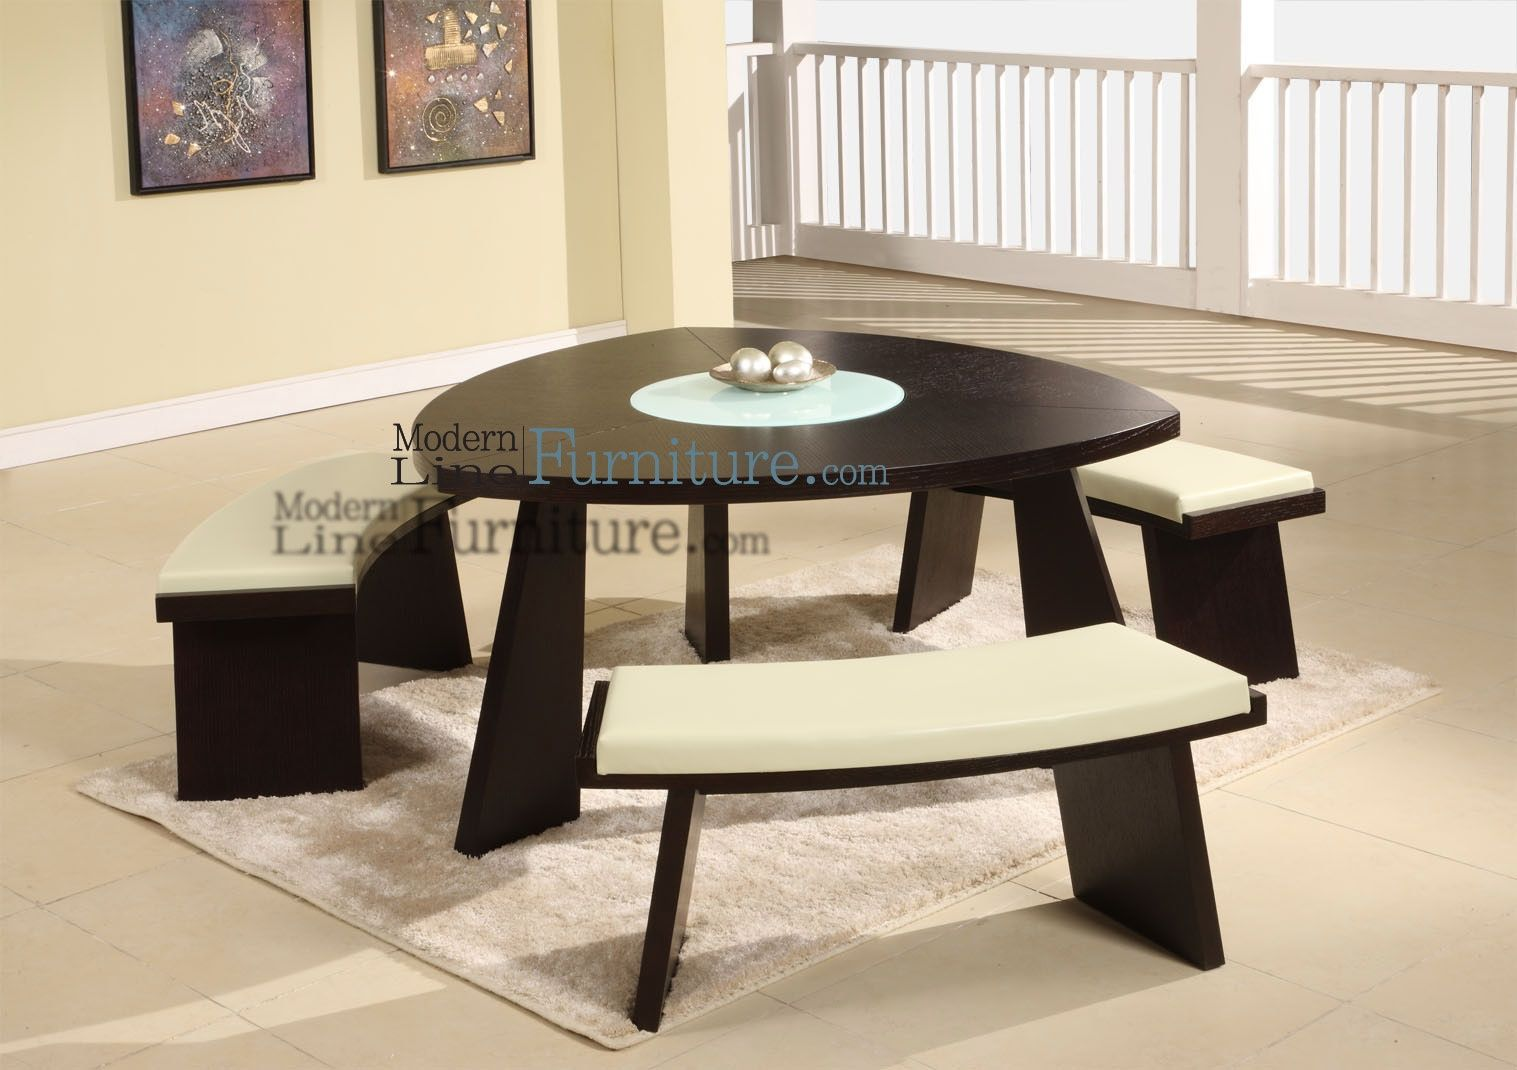 Triangle Dining Table With Benches Triangular Room Fabulous